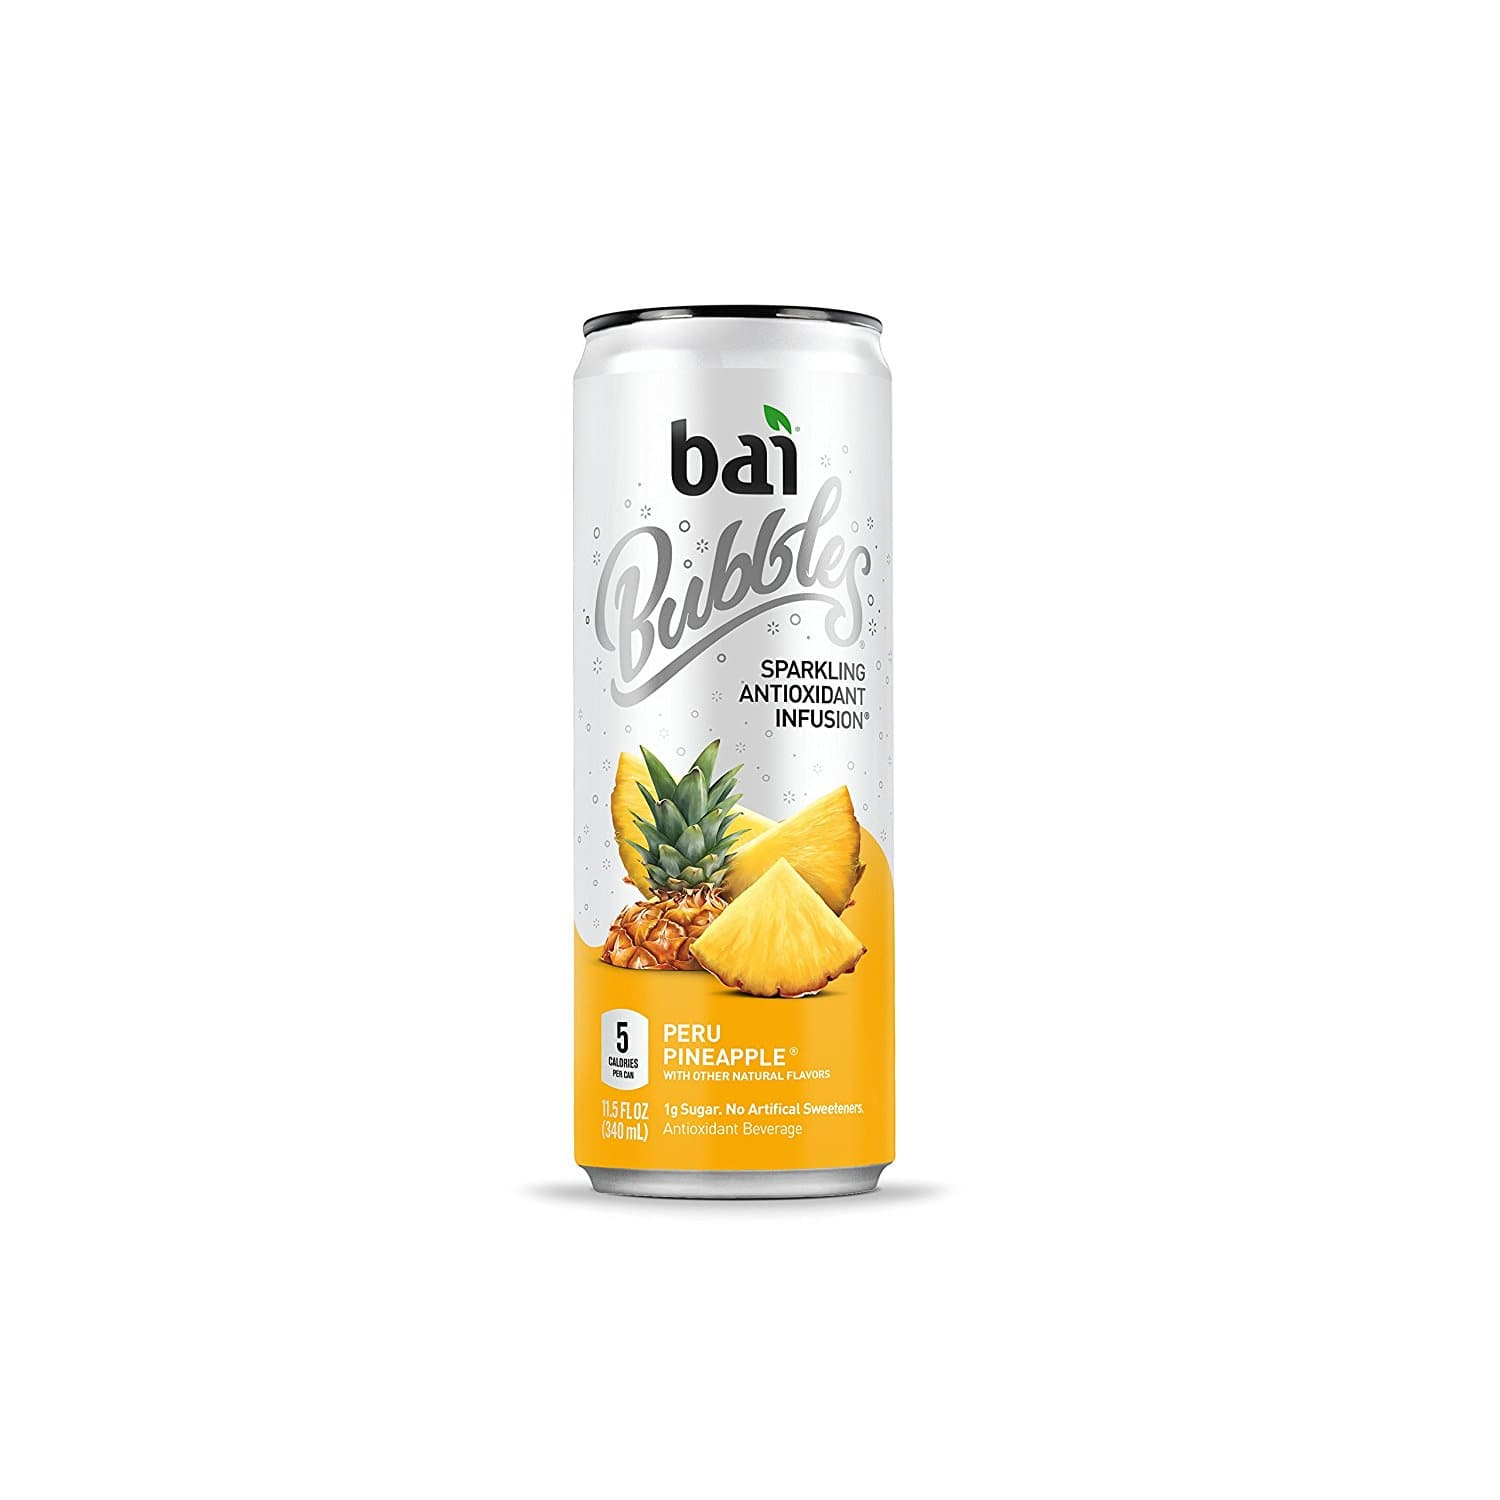 12-Pack of 11.5oz Bai Bubbles Antioxidant Infused Sparkling Water Drinks (Peru Pineapple) $9.30 or Less w/ S&S + Free Shipping ~ Amazon